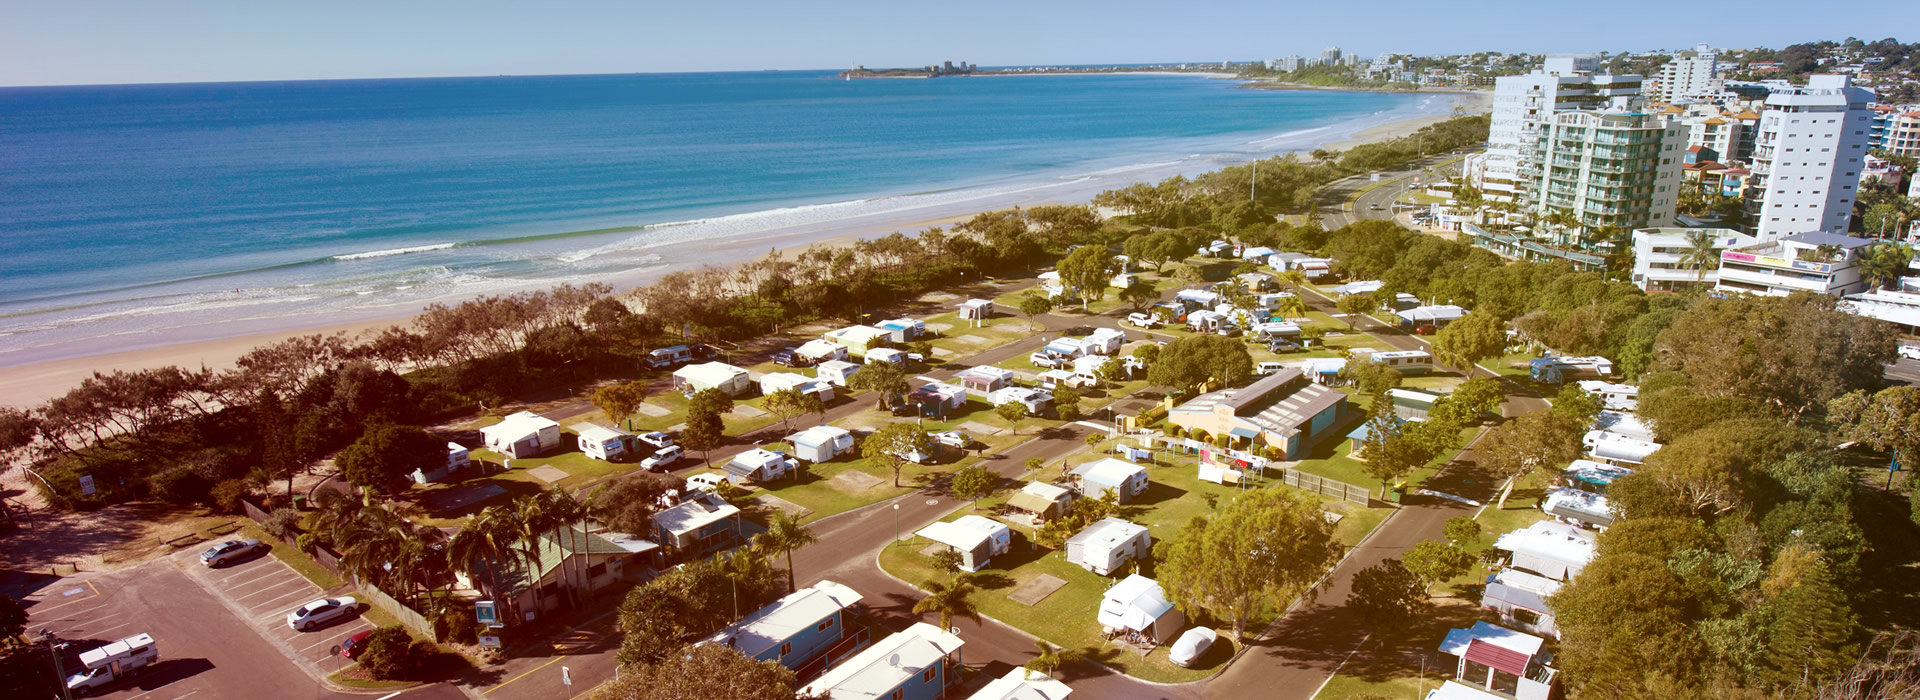 Maroochydore Beach Holiday Park - Maroochydore photo 1